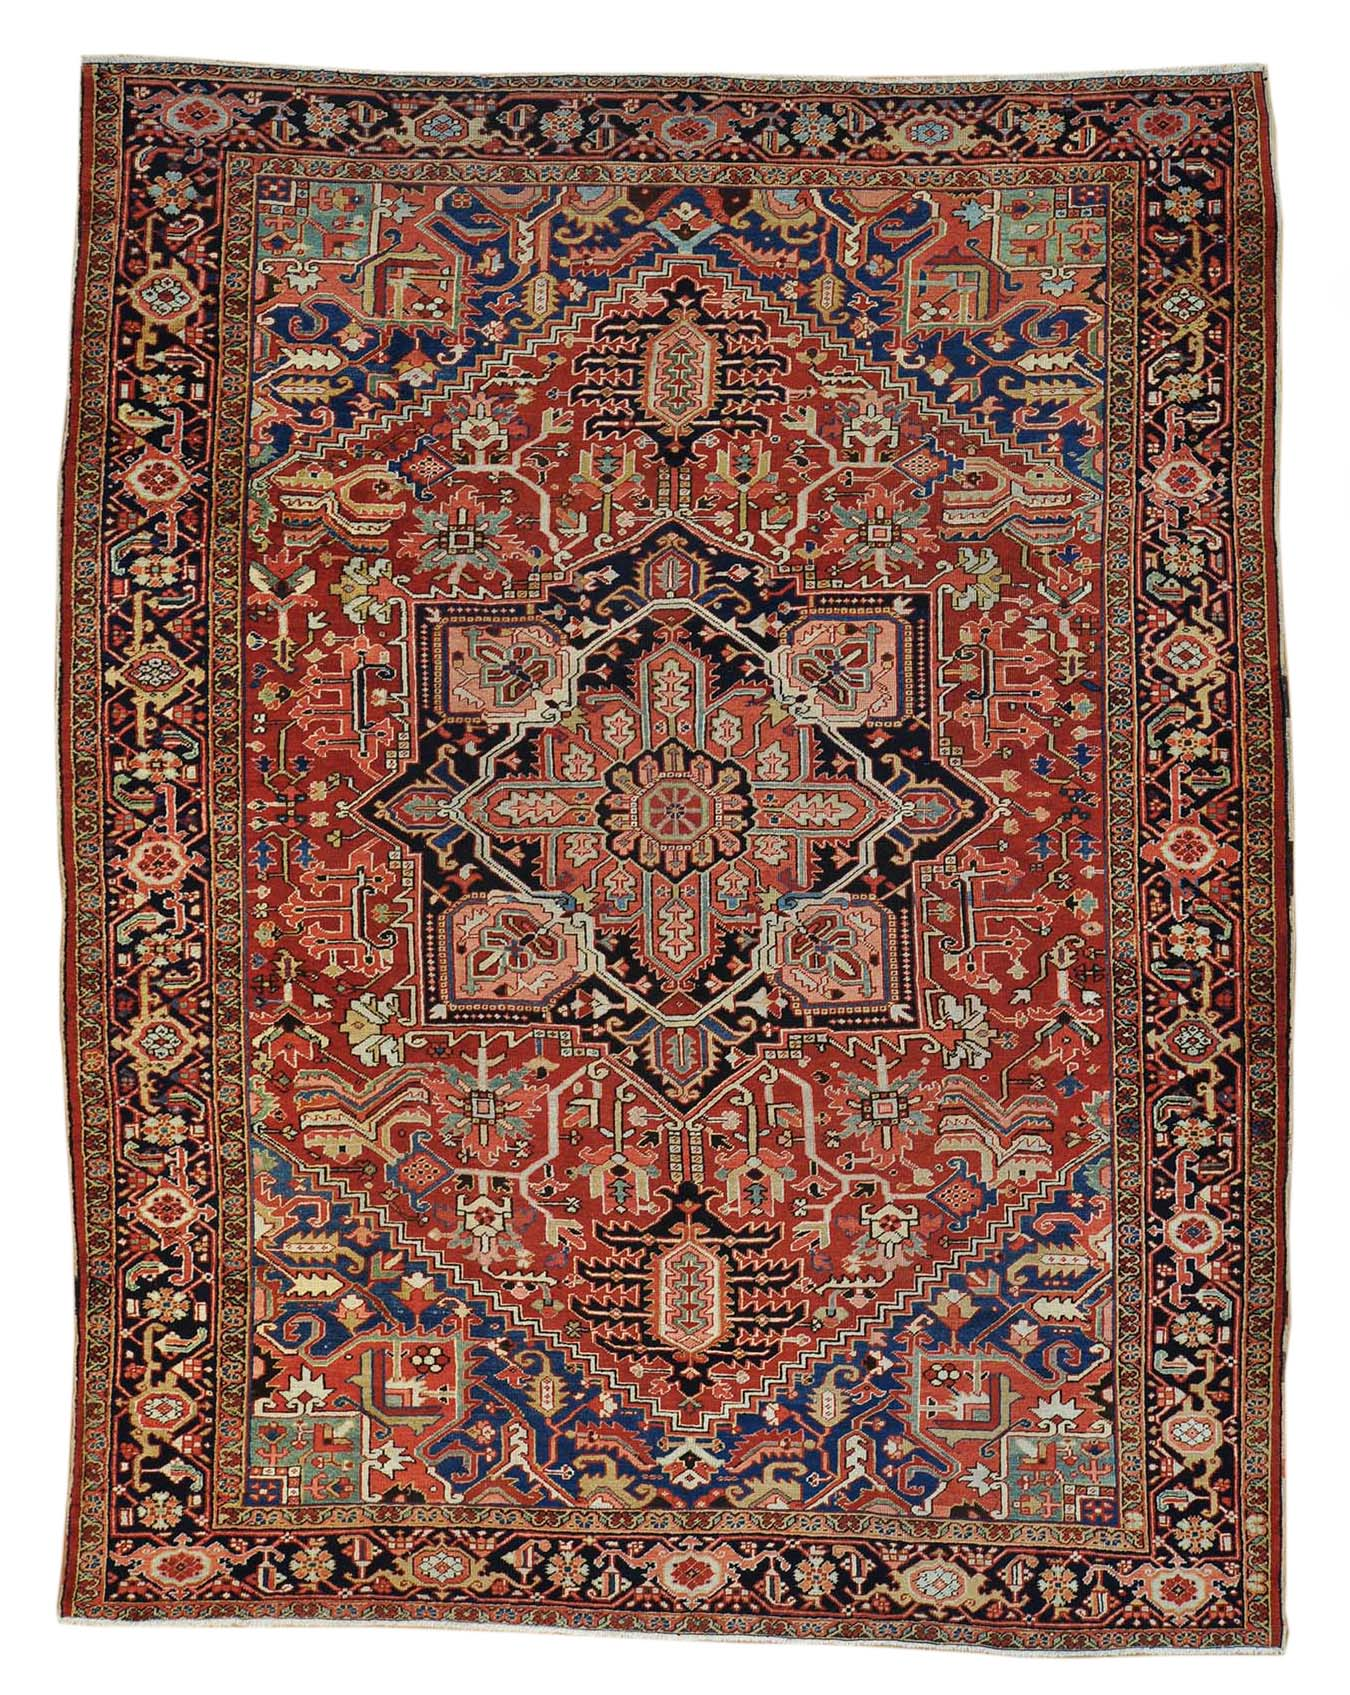 10'x13' Antique Persian Heriz Rug - Main Street Oriental Rugs